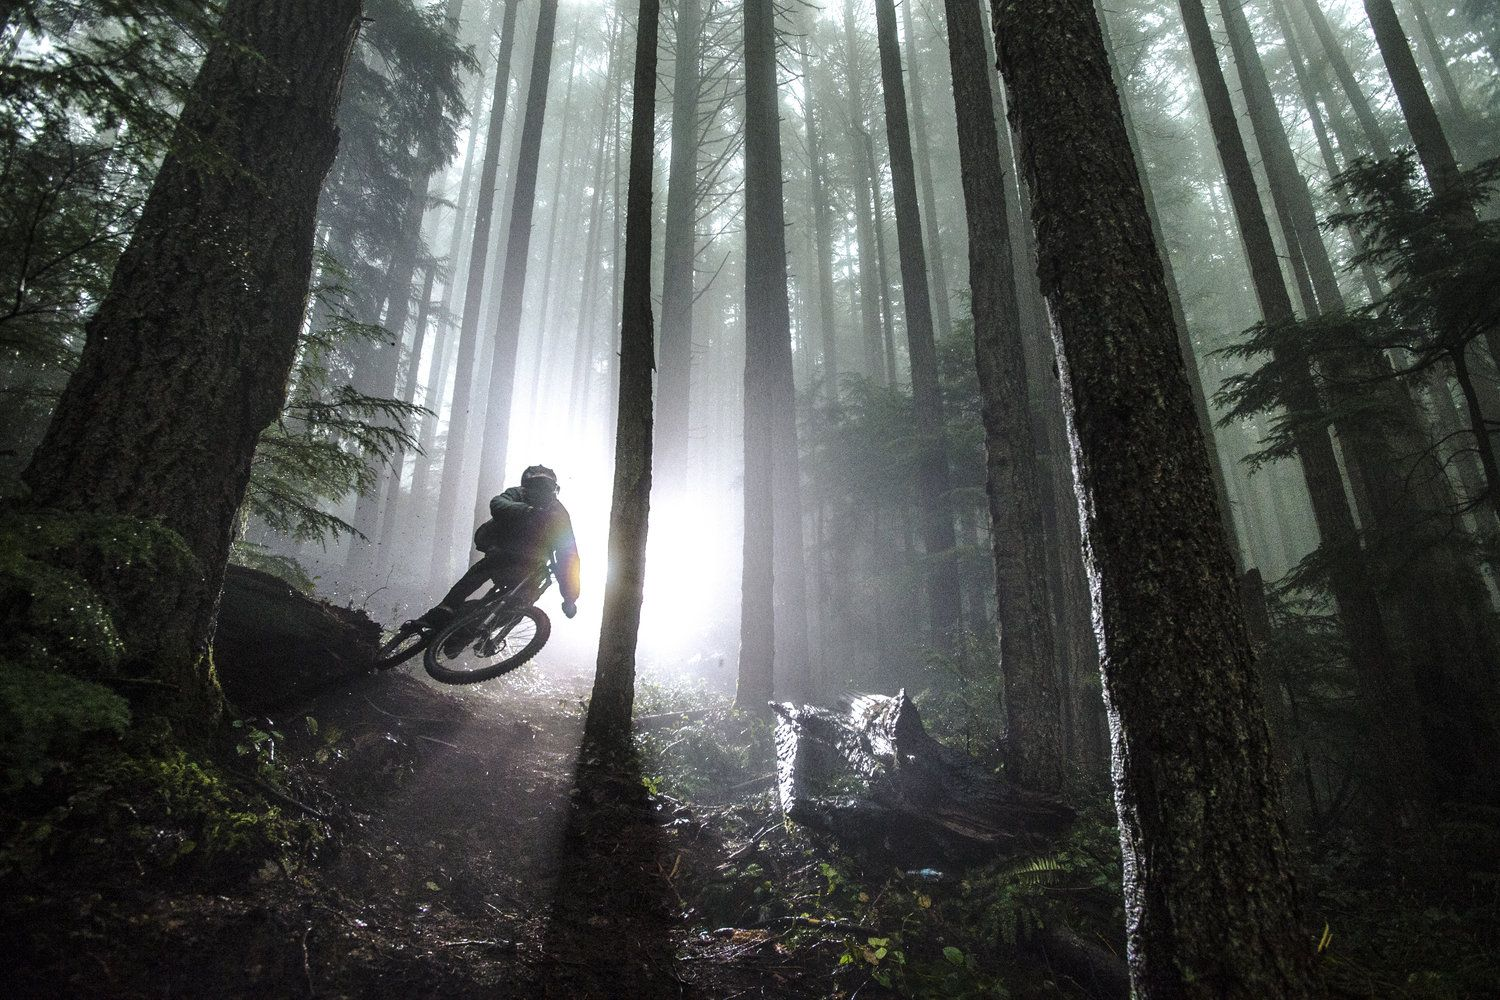 This 100 Second Video Will Make You Want To Ride Camera Lenta